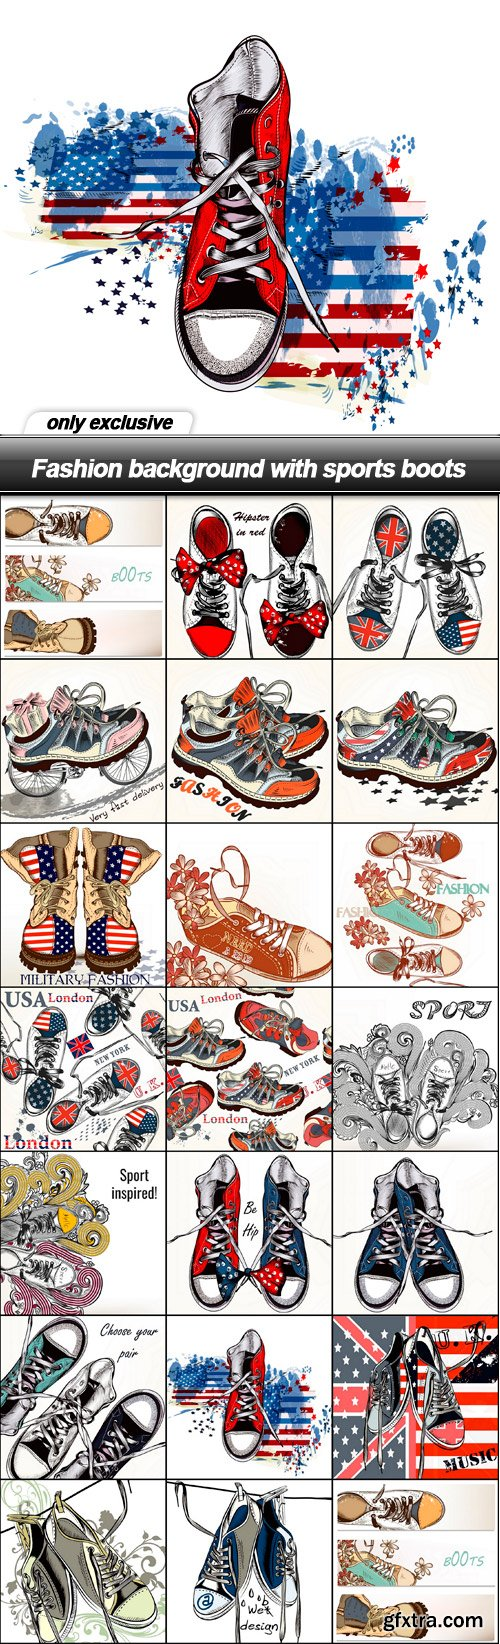 Fashion background with sports boots - 20 EPS